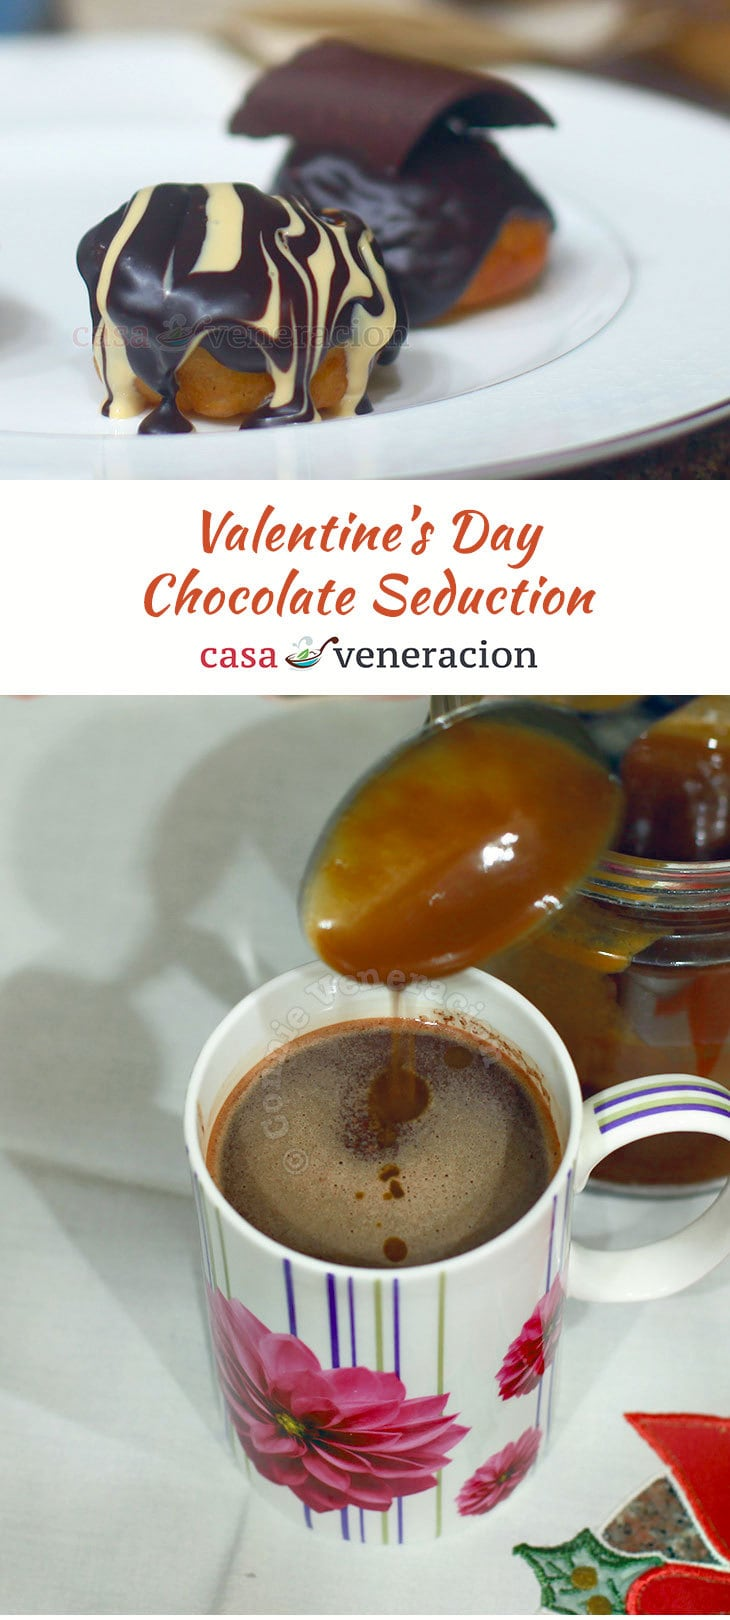 Despite the beliefs and practices of an Aztec emperor who lived over six hundred years ago, there is still no scientific study that confirms the relation between chocolate consumption and elevated sexual desire or prowess.